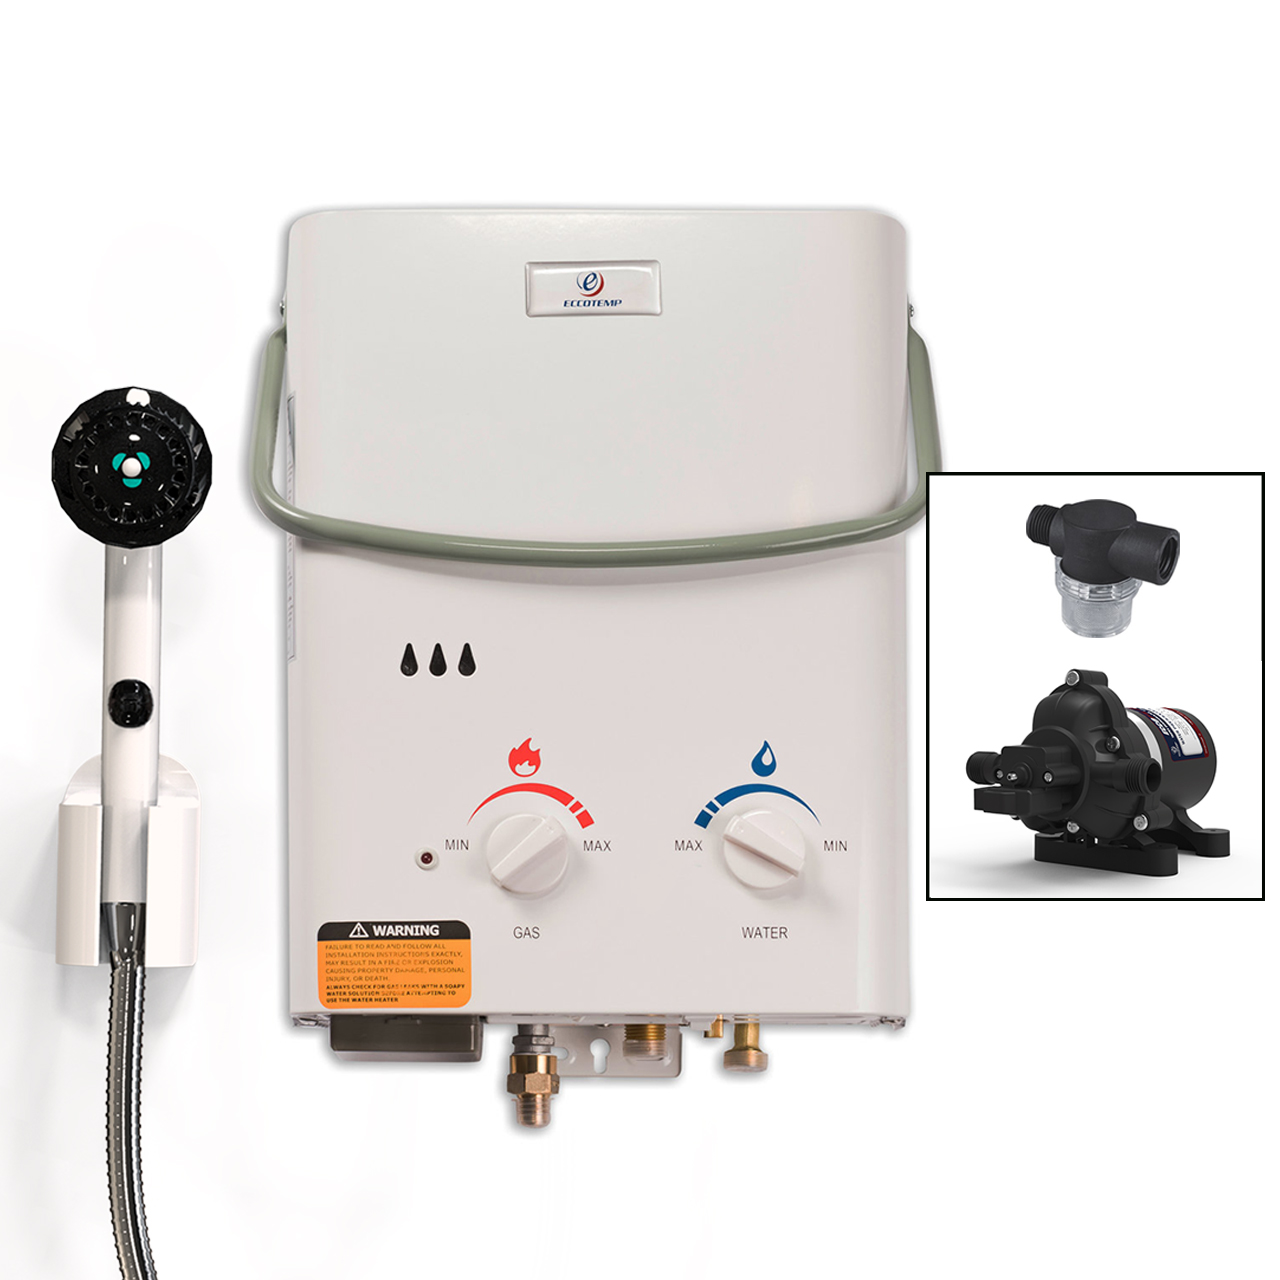 Eccotemp Portable Tankless Water Heater with EccoFlo Pump and Strainer